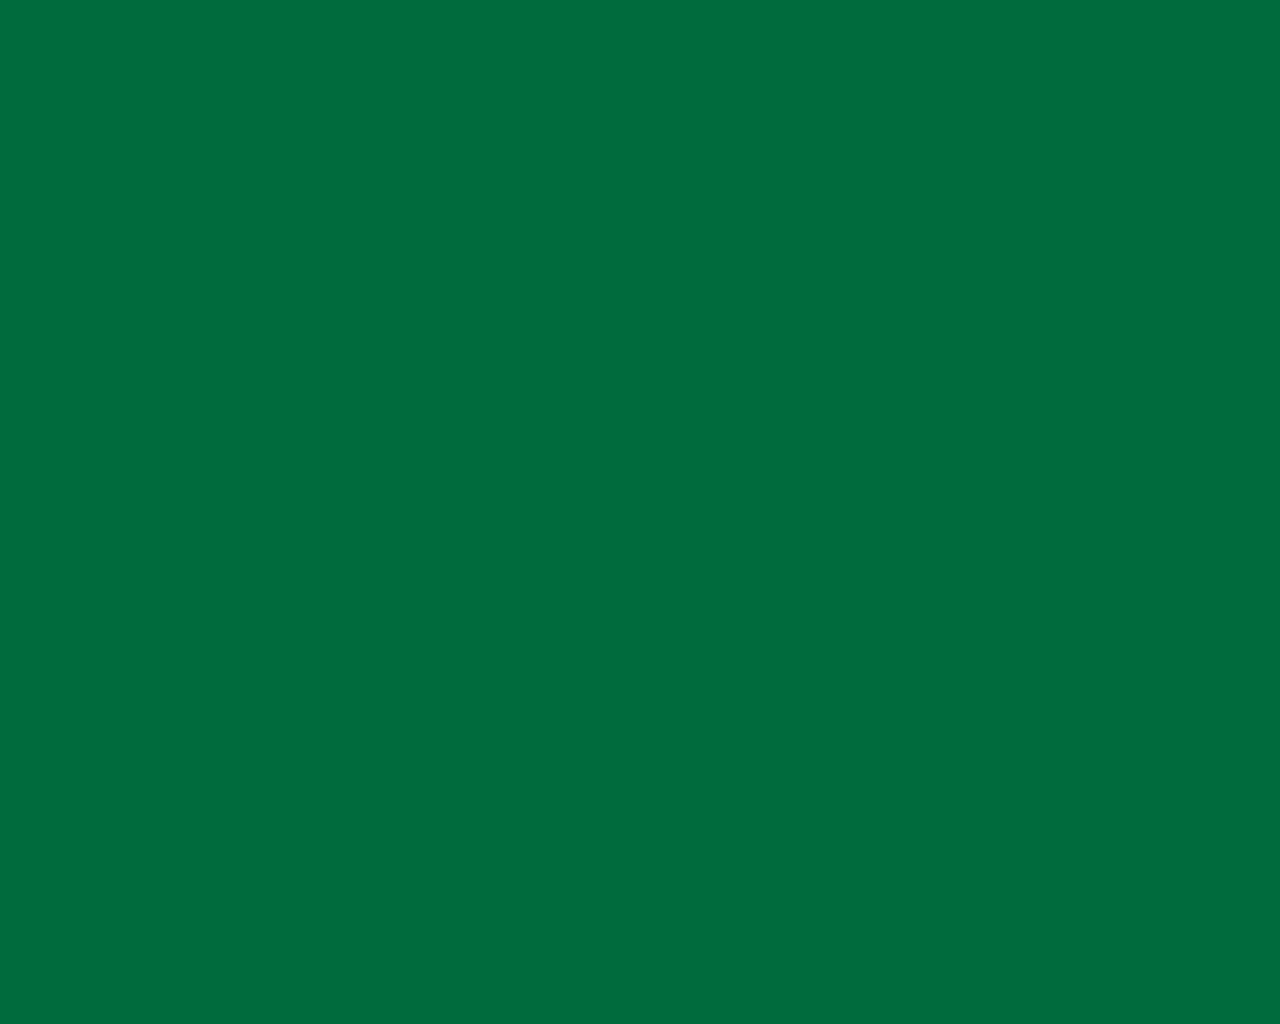 1280x1024 Cadmium Green Solid Color Background